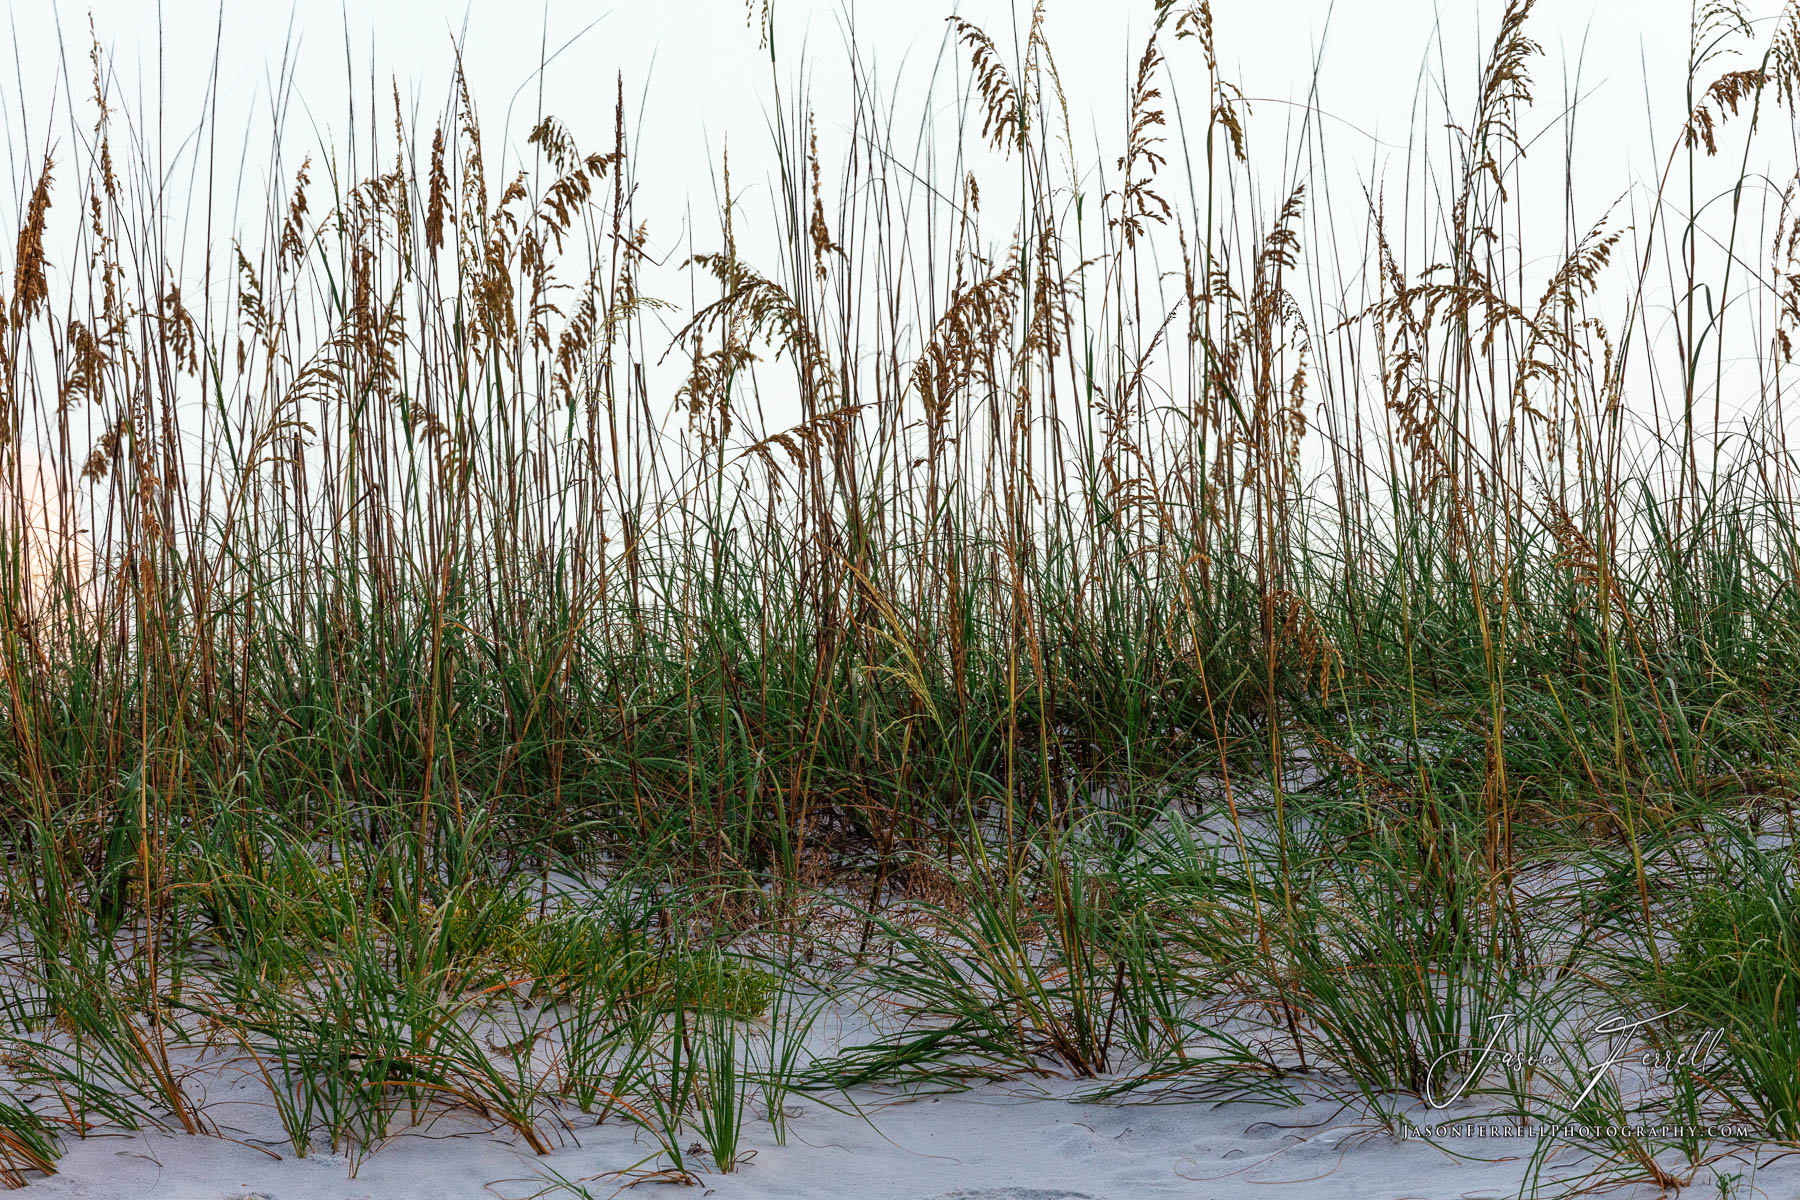 Sea Oats is a tall, erect perennial grass that can grow to 1 to 2 m in height. Its long, thin leaves reach lengths of 20 to 40...